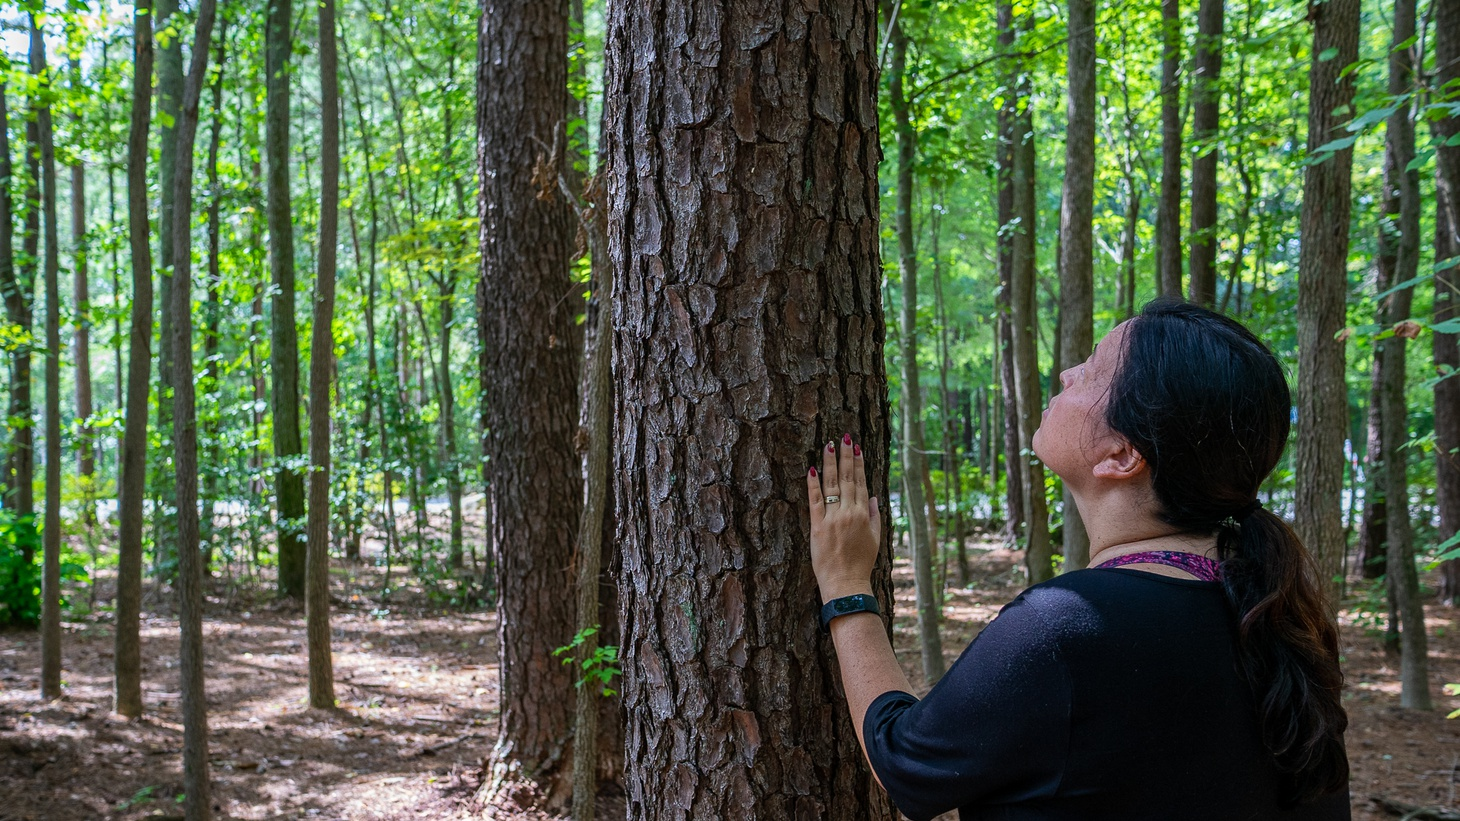 Trees have their own hidden lives, and spending time among them can greatly benefit our health.